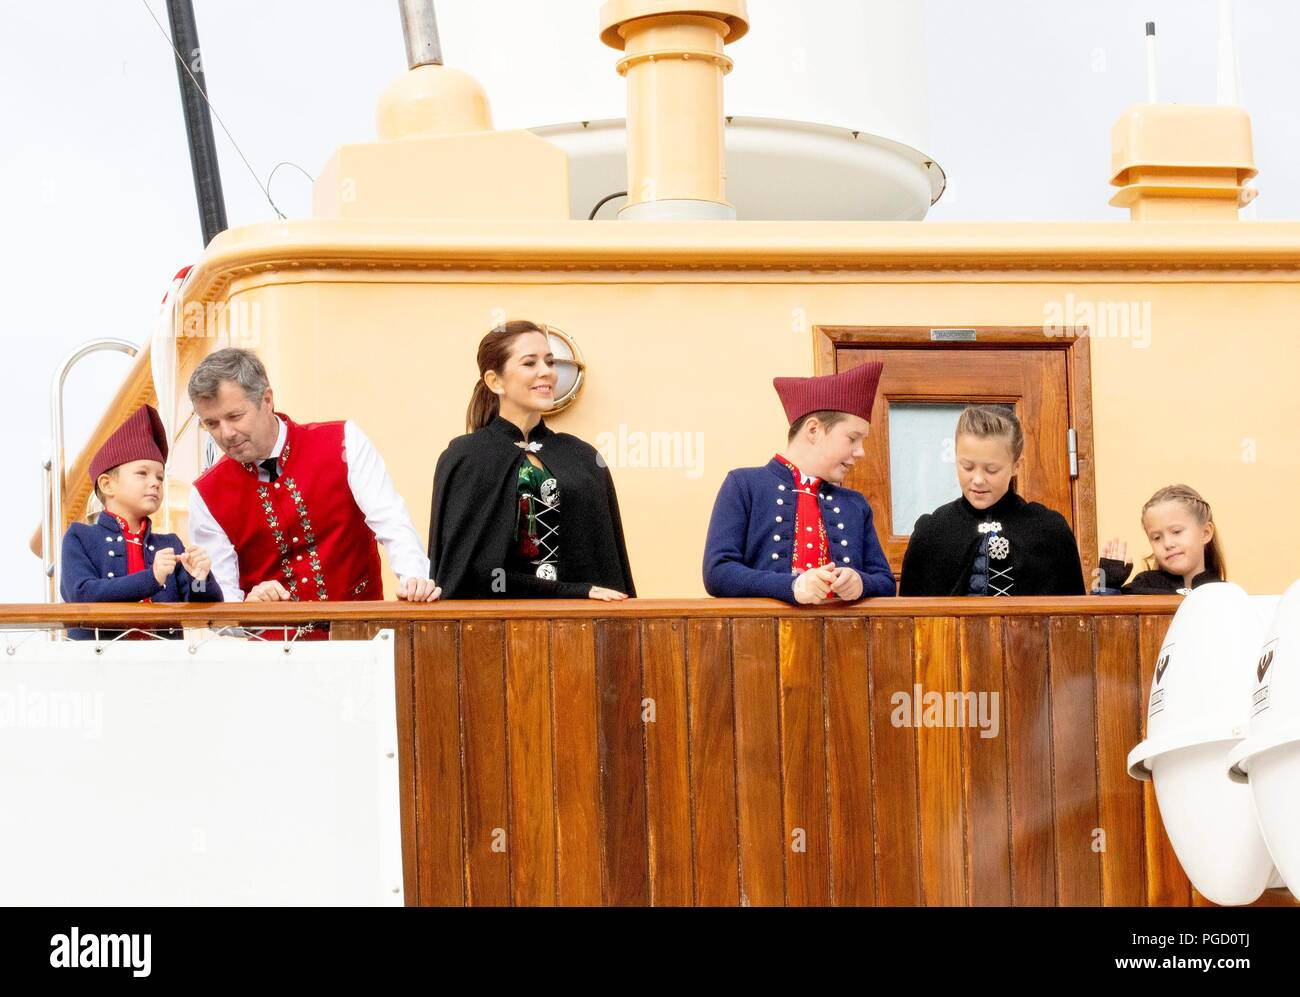 Crown Prince Frederik, Crown Princess Mary, Prince Christian, Princess Isabella, Prince Vincent and Princess Josehpine of Denmark arrive with the The Royal Ship, HDMY Dannebrog at Bakkafrost in Glyvrar, on August 25, 2018, on the 3rd of the 4 days visit to the Faroe Islands  Photo : Albert Nieboer /  Netherlands OUT / Point de Vue OUT | - Stock Image